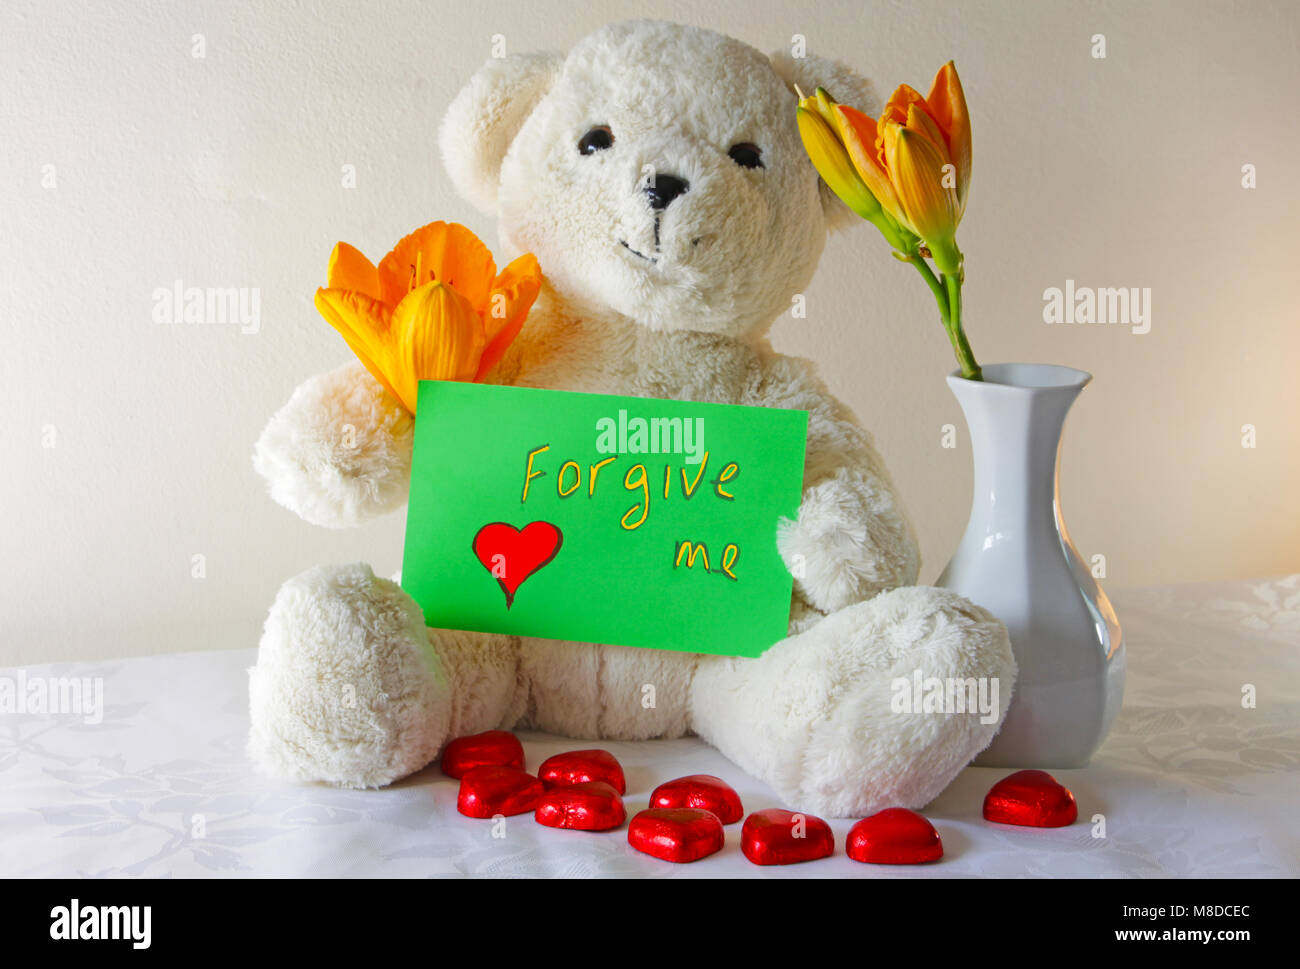 Cute white teddy bear holding agreen sign that says forgive me - Stock Image